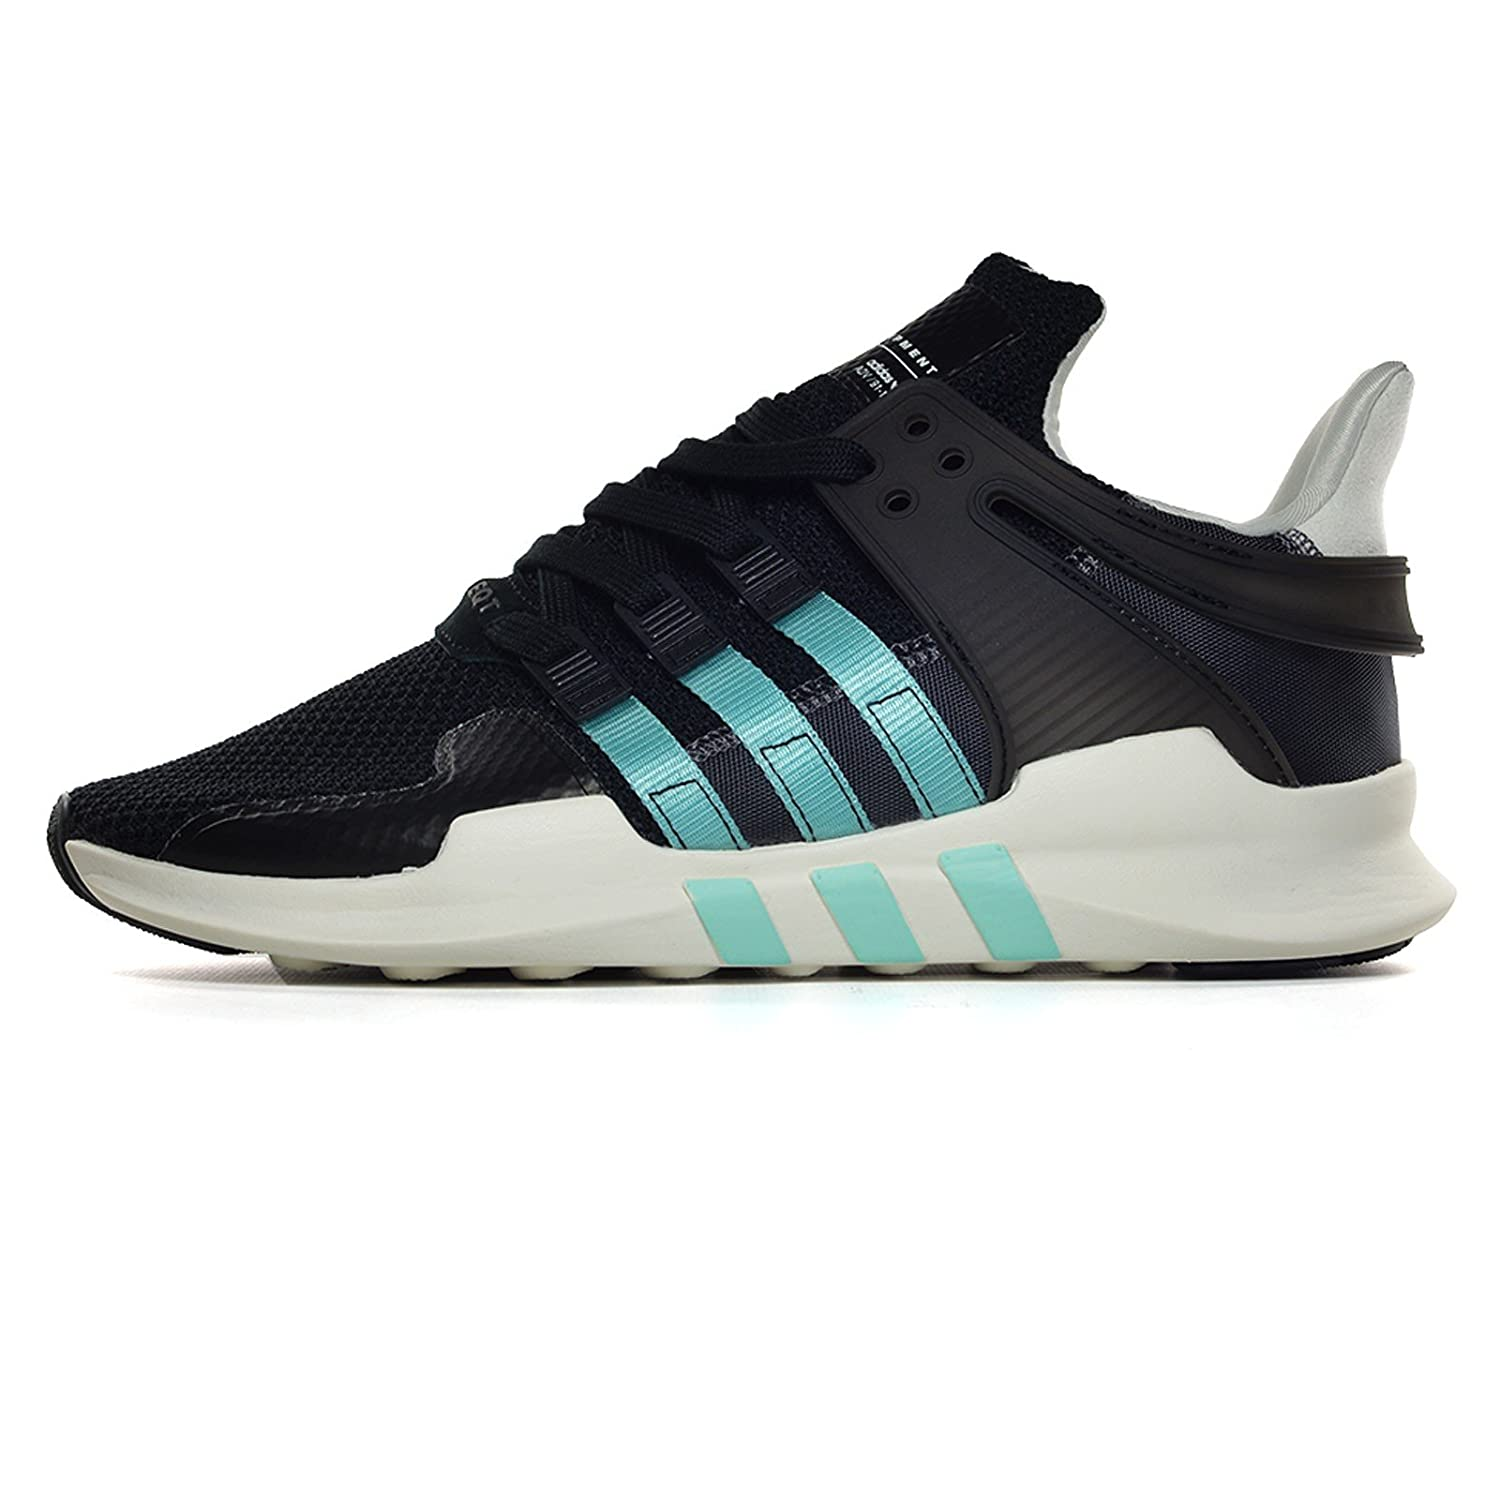 adidas Womens Sneakers Equipment Support ADV BB2324 B06XD1WPXT 5 B(M) US|Core Black/Clear Aqua